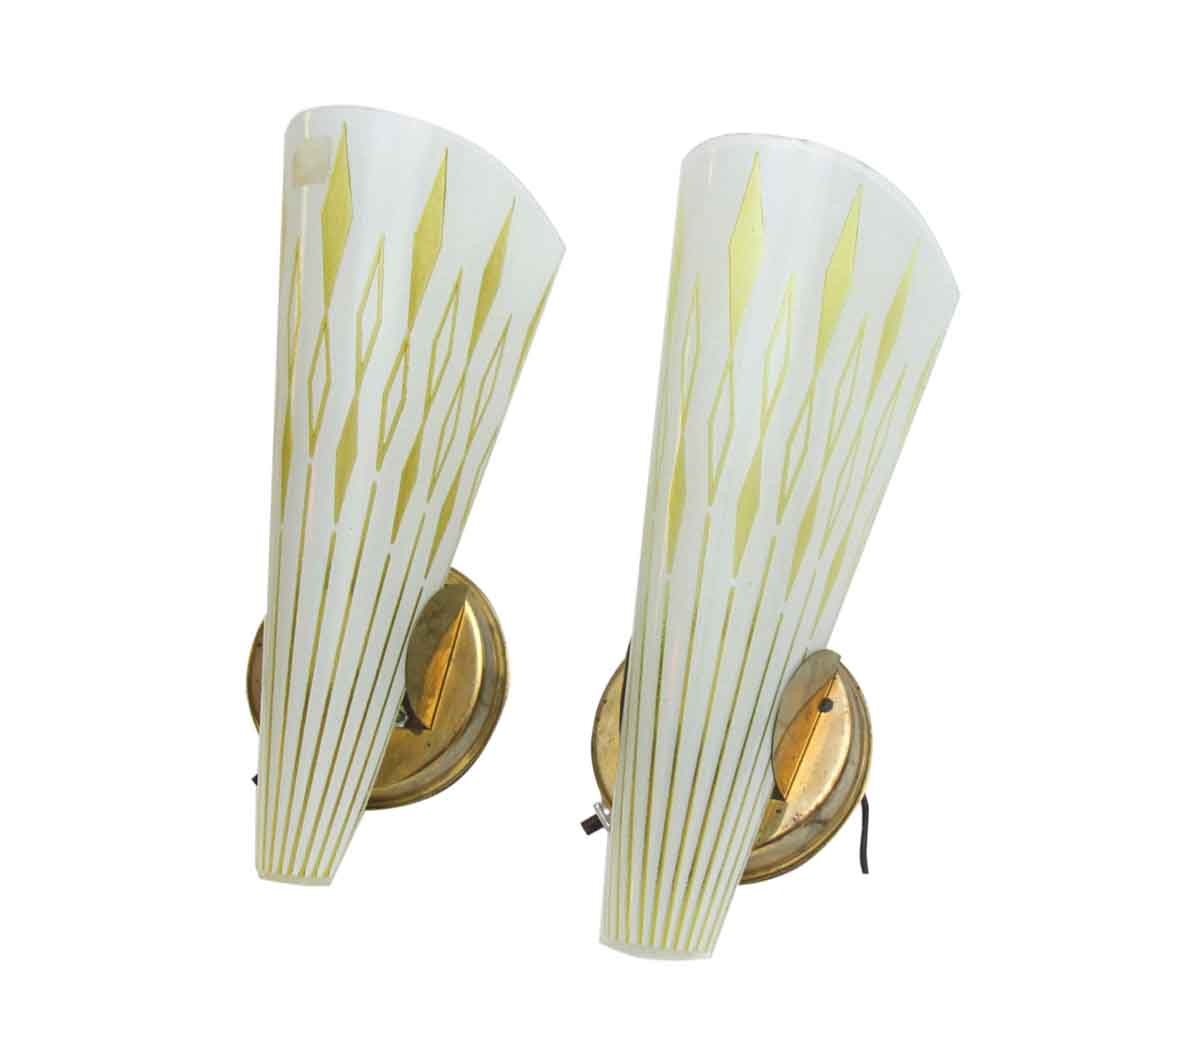 Pair of 1950s Mid Century Modern Wall Sconces | Olde Good ... on Wall Sconces Modern id=45739